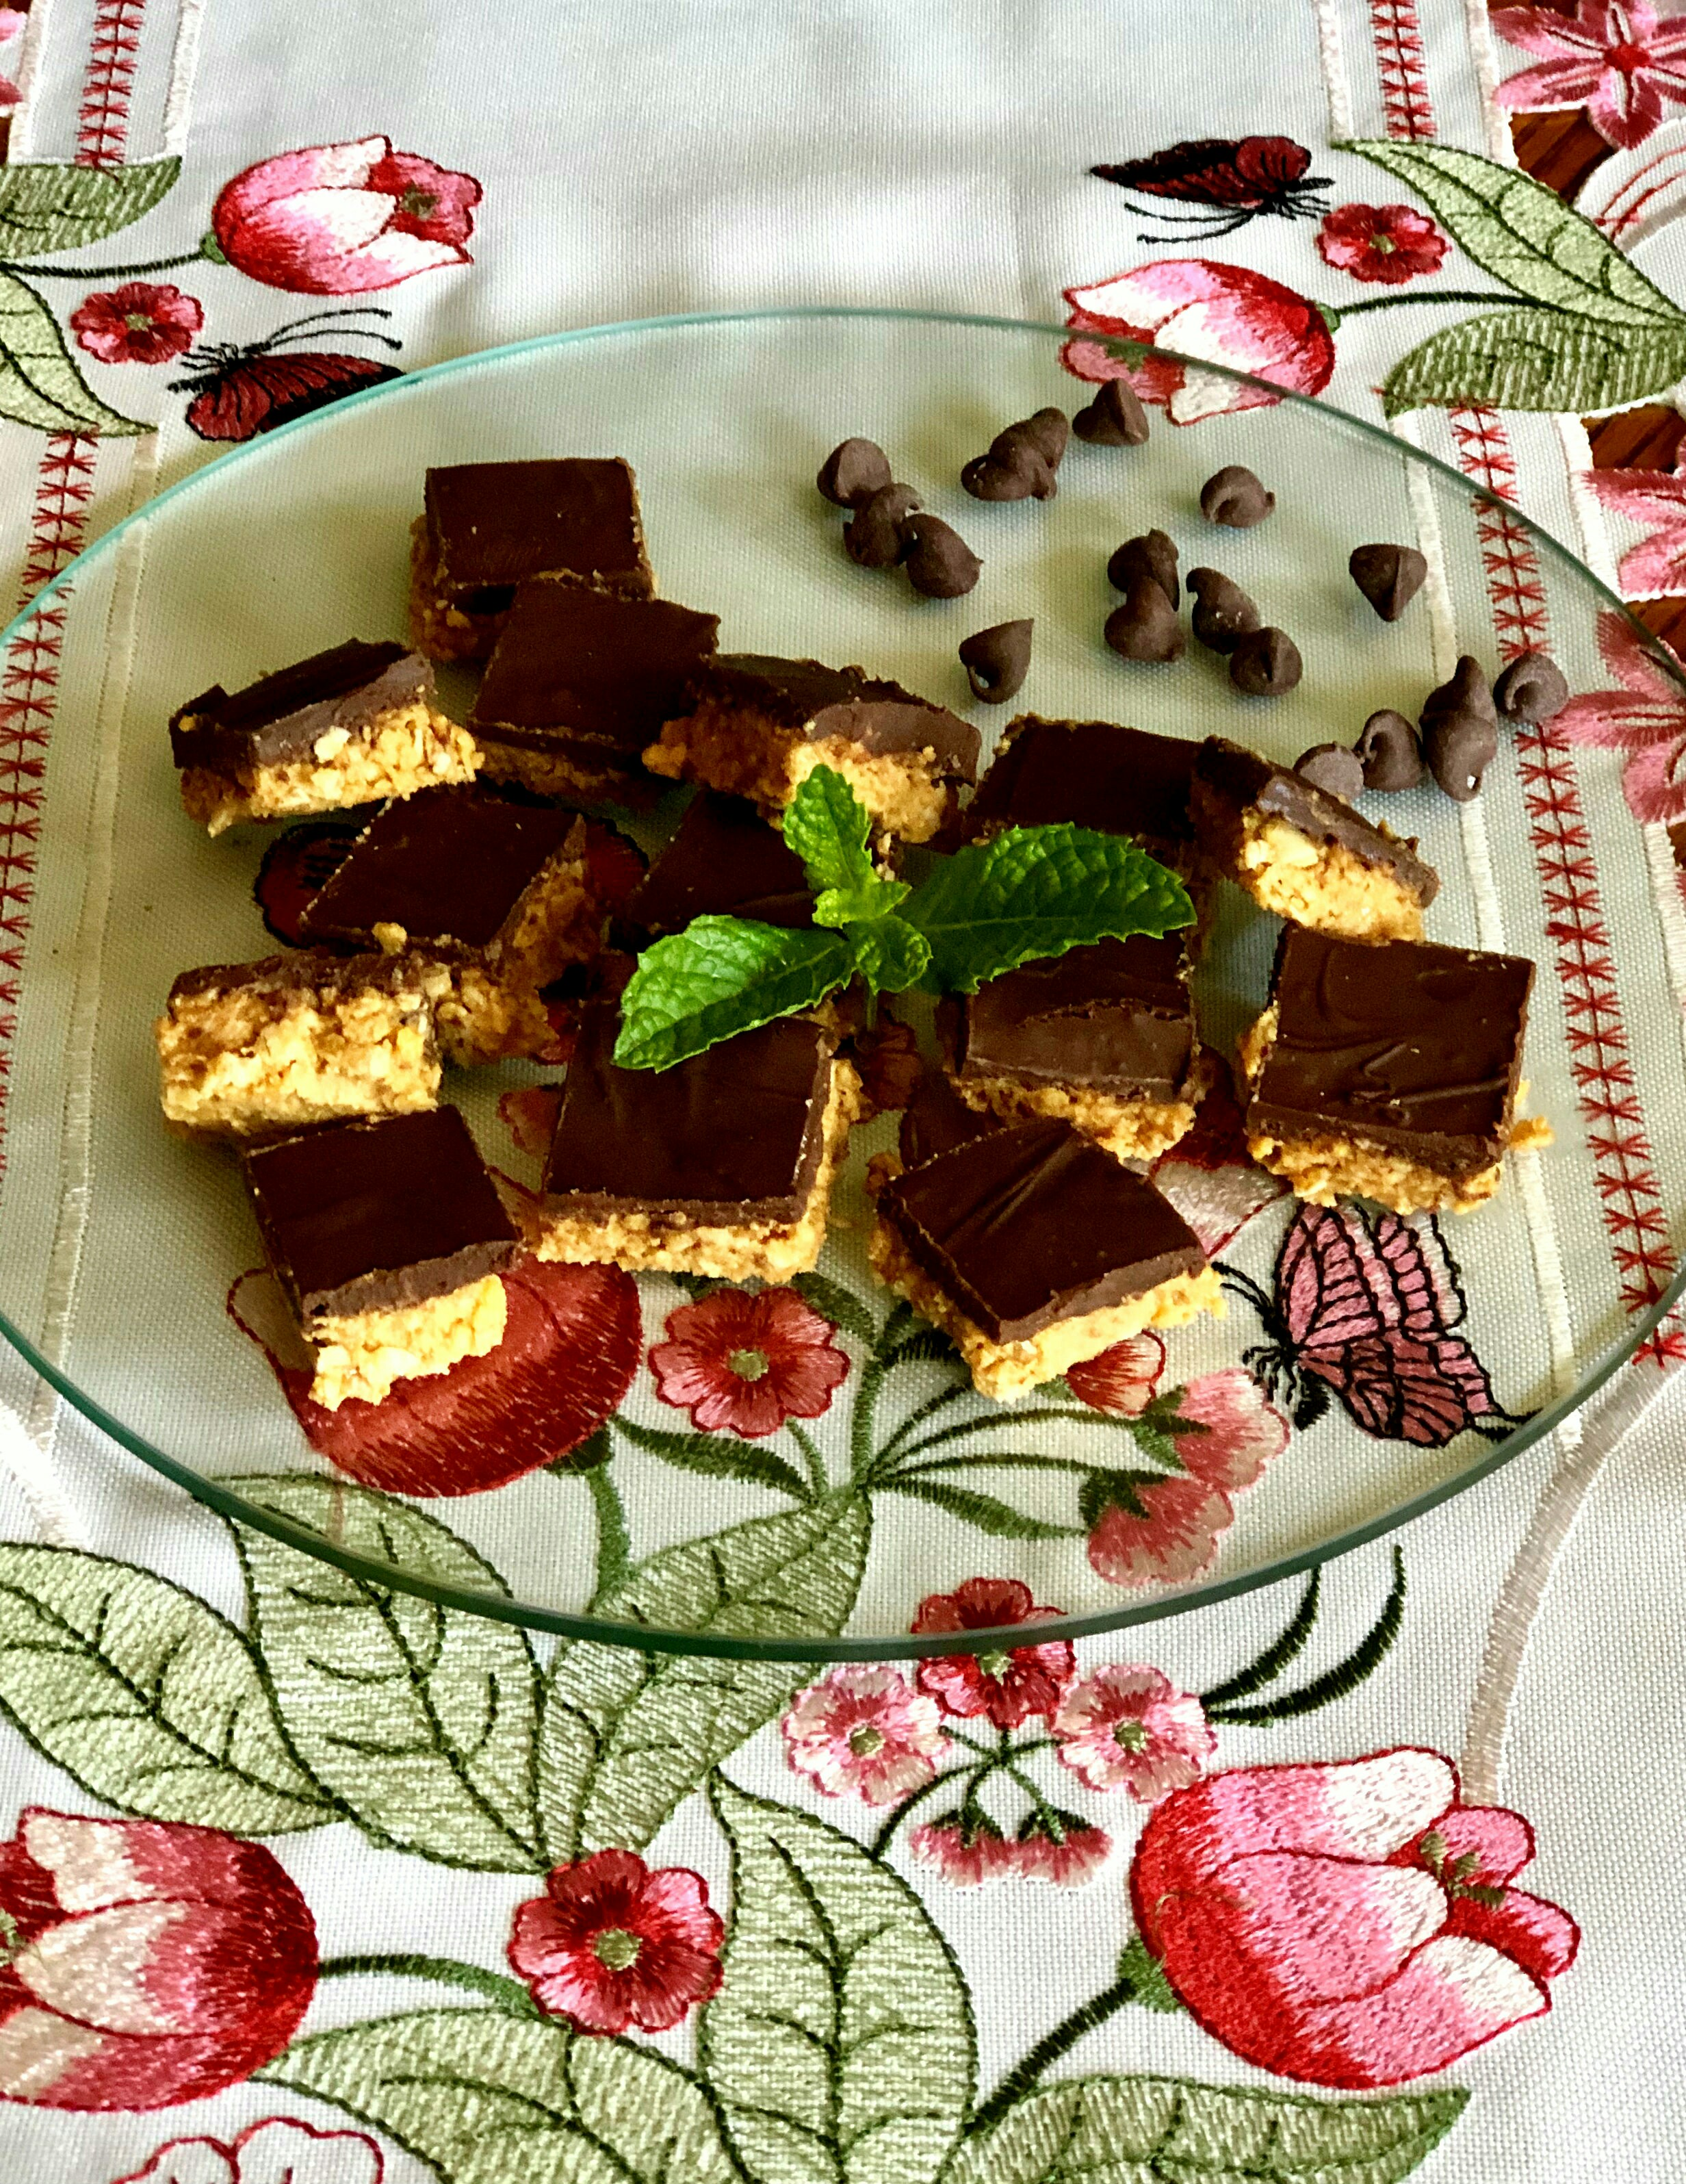 Chocolate and Peanut Butter Oat Bars